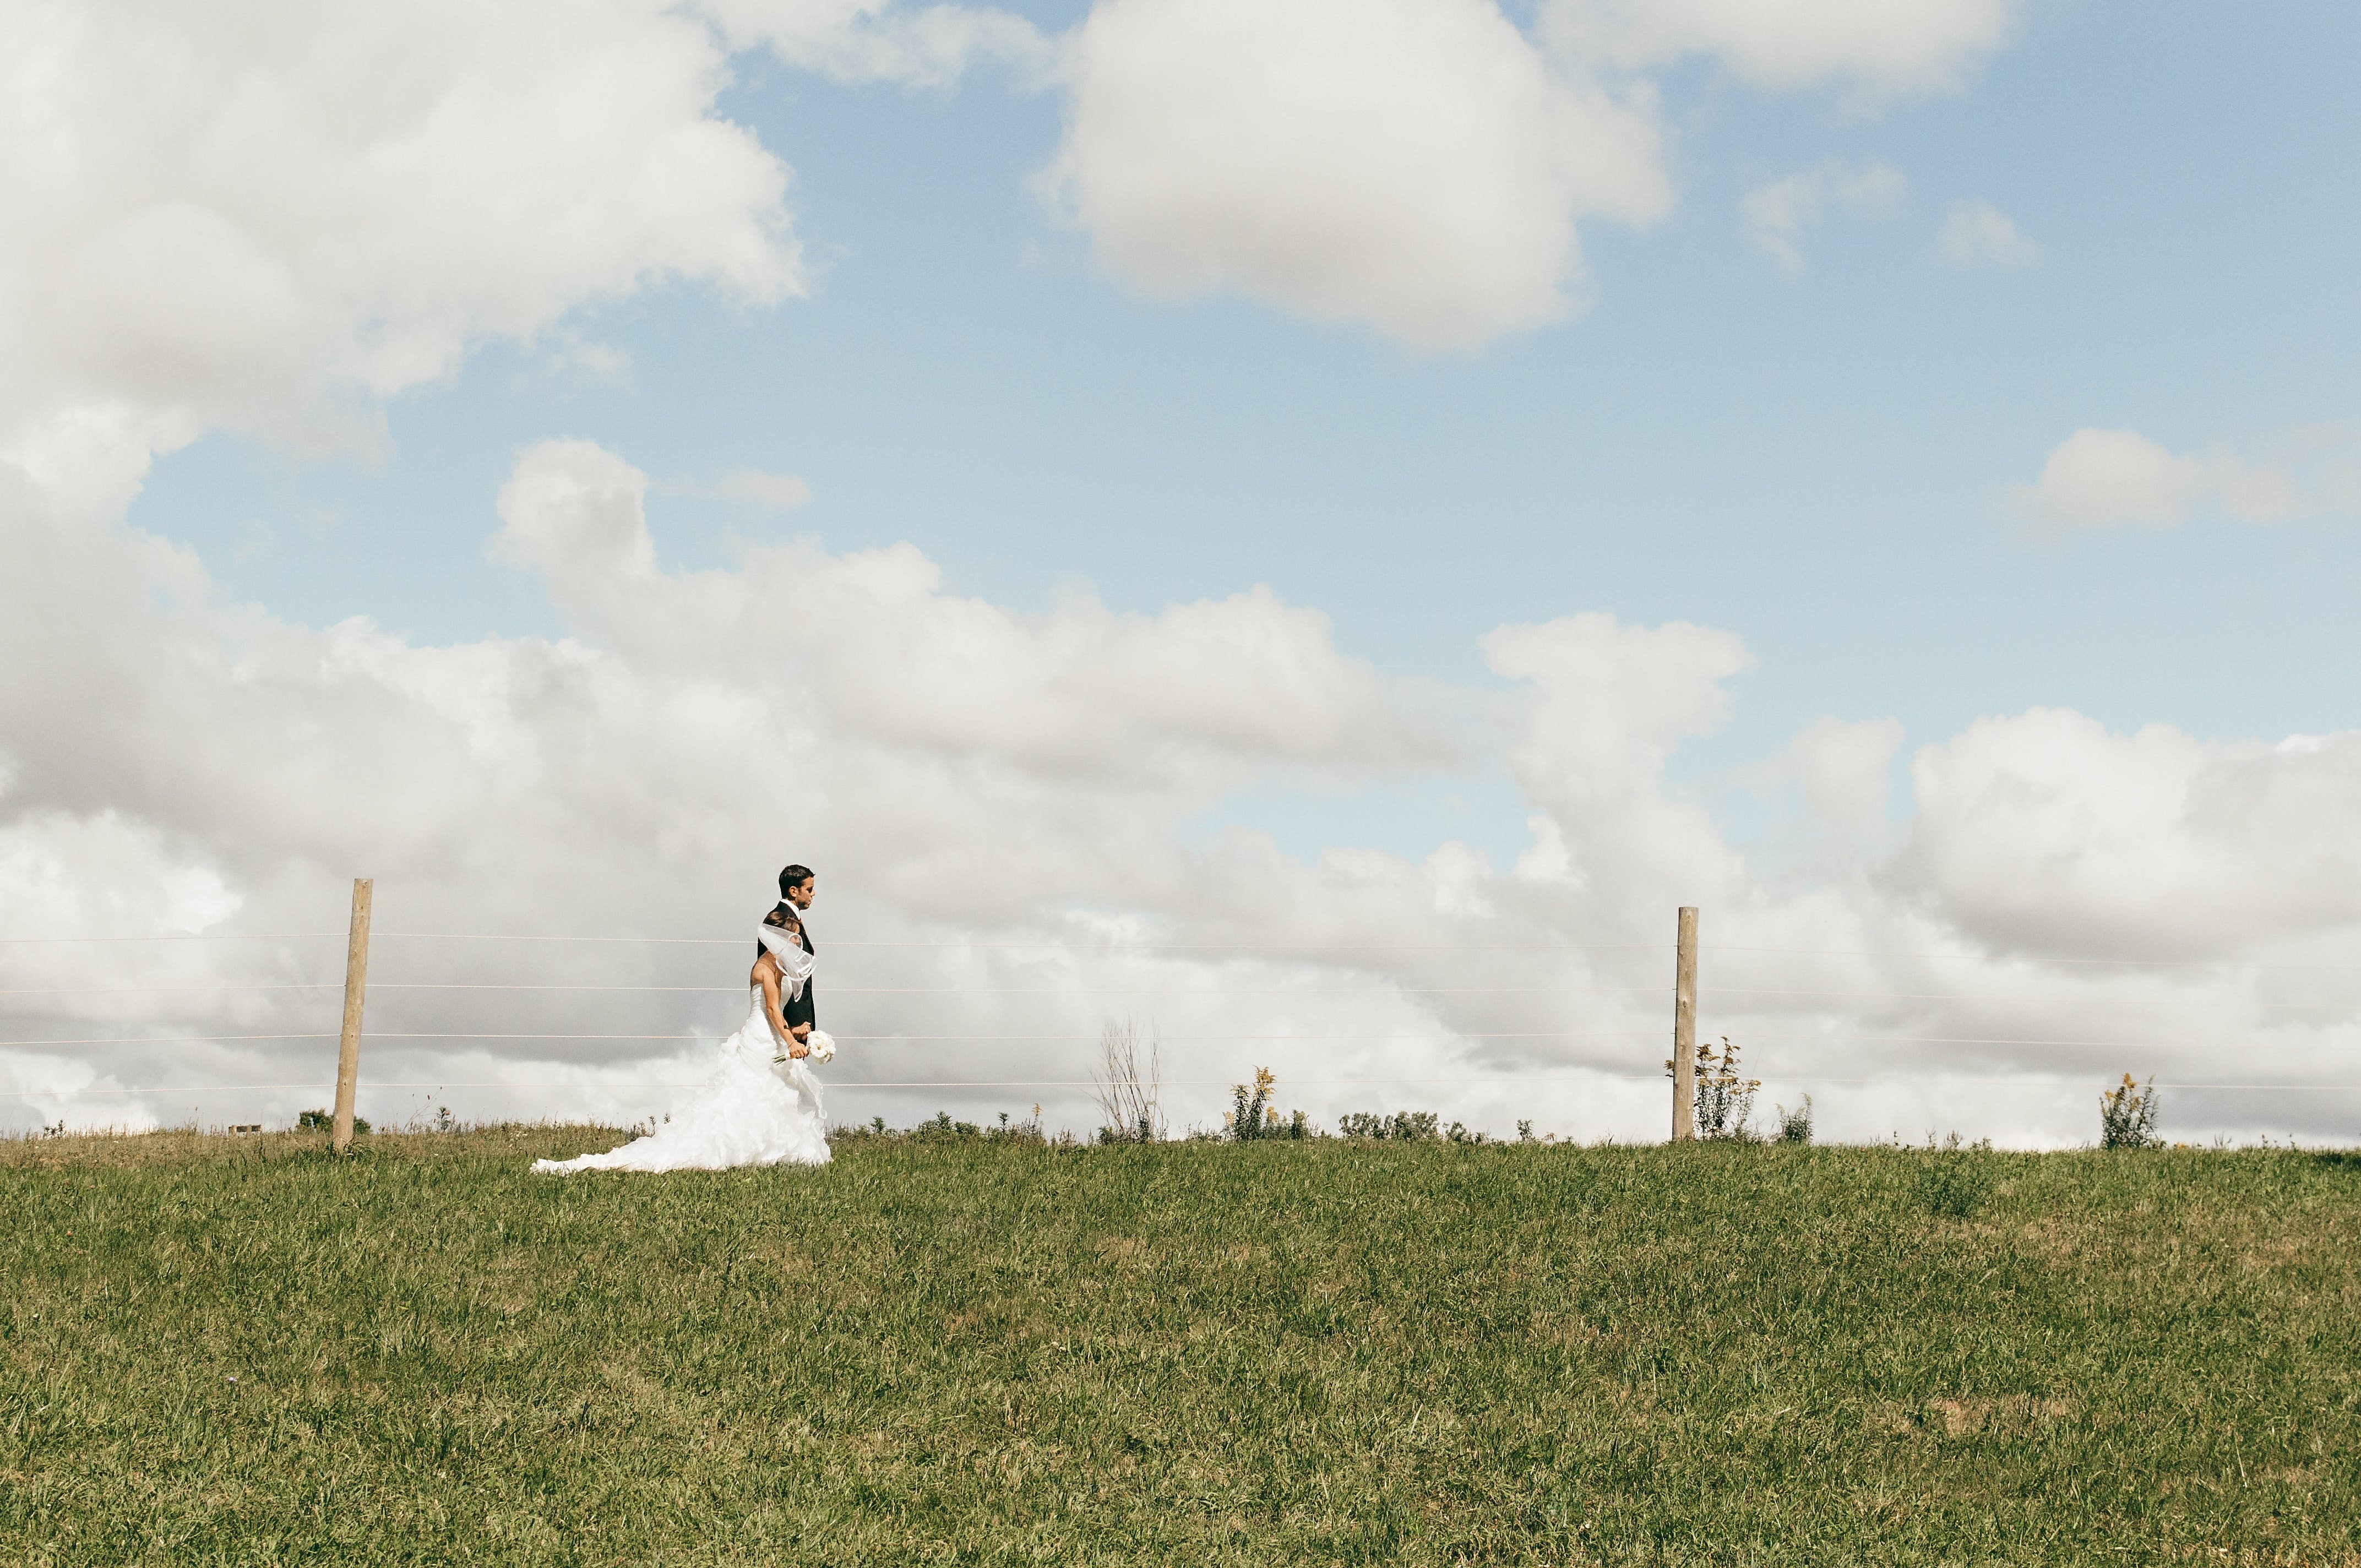 Couple in Wedding Suit and Dress on an Open Fiele